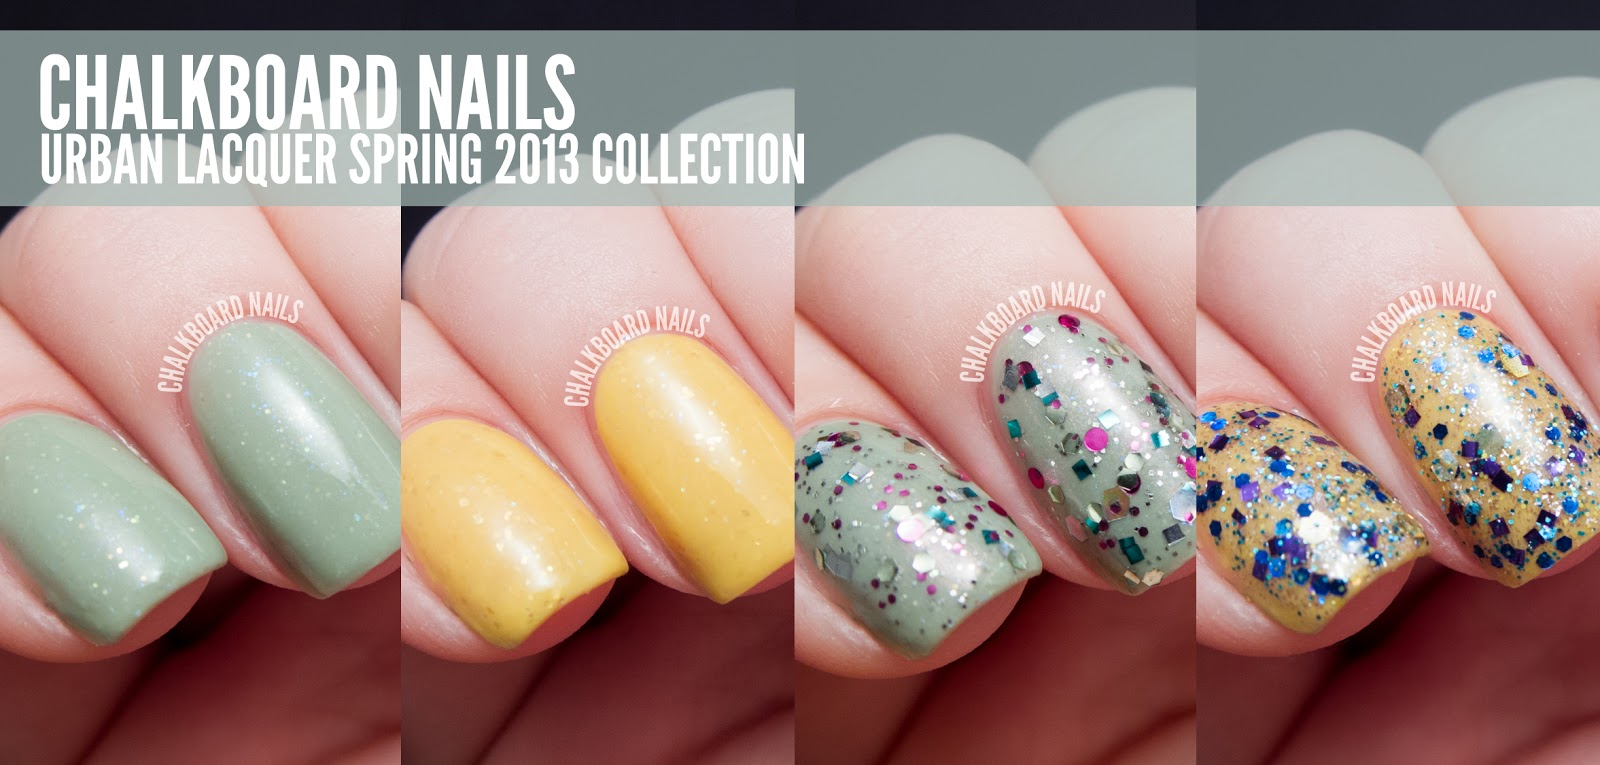 Urban Lacquer Spring 2013 Collection | Chalkboard Nails | Nail Art Blog